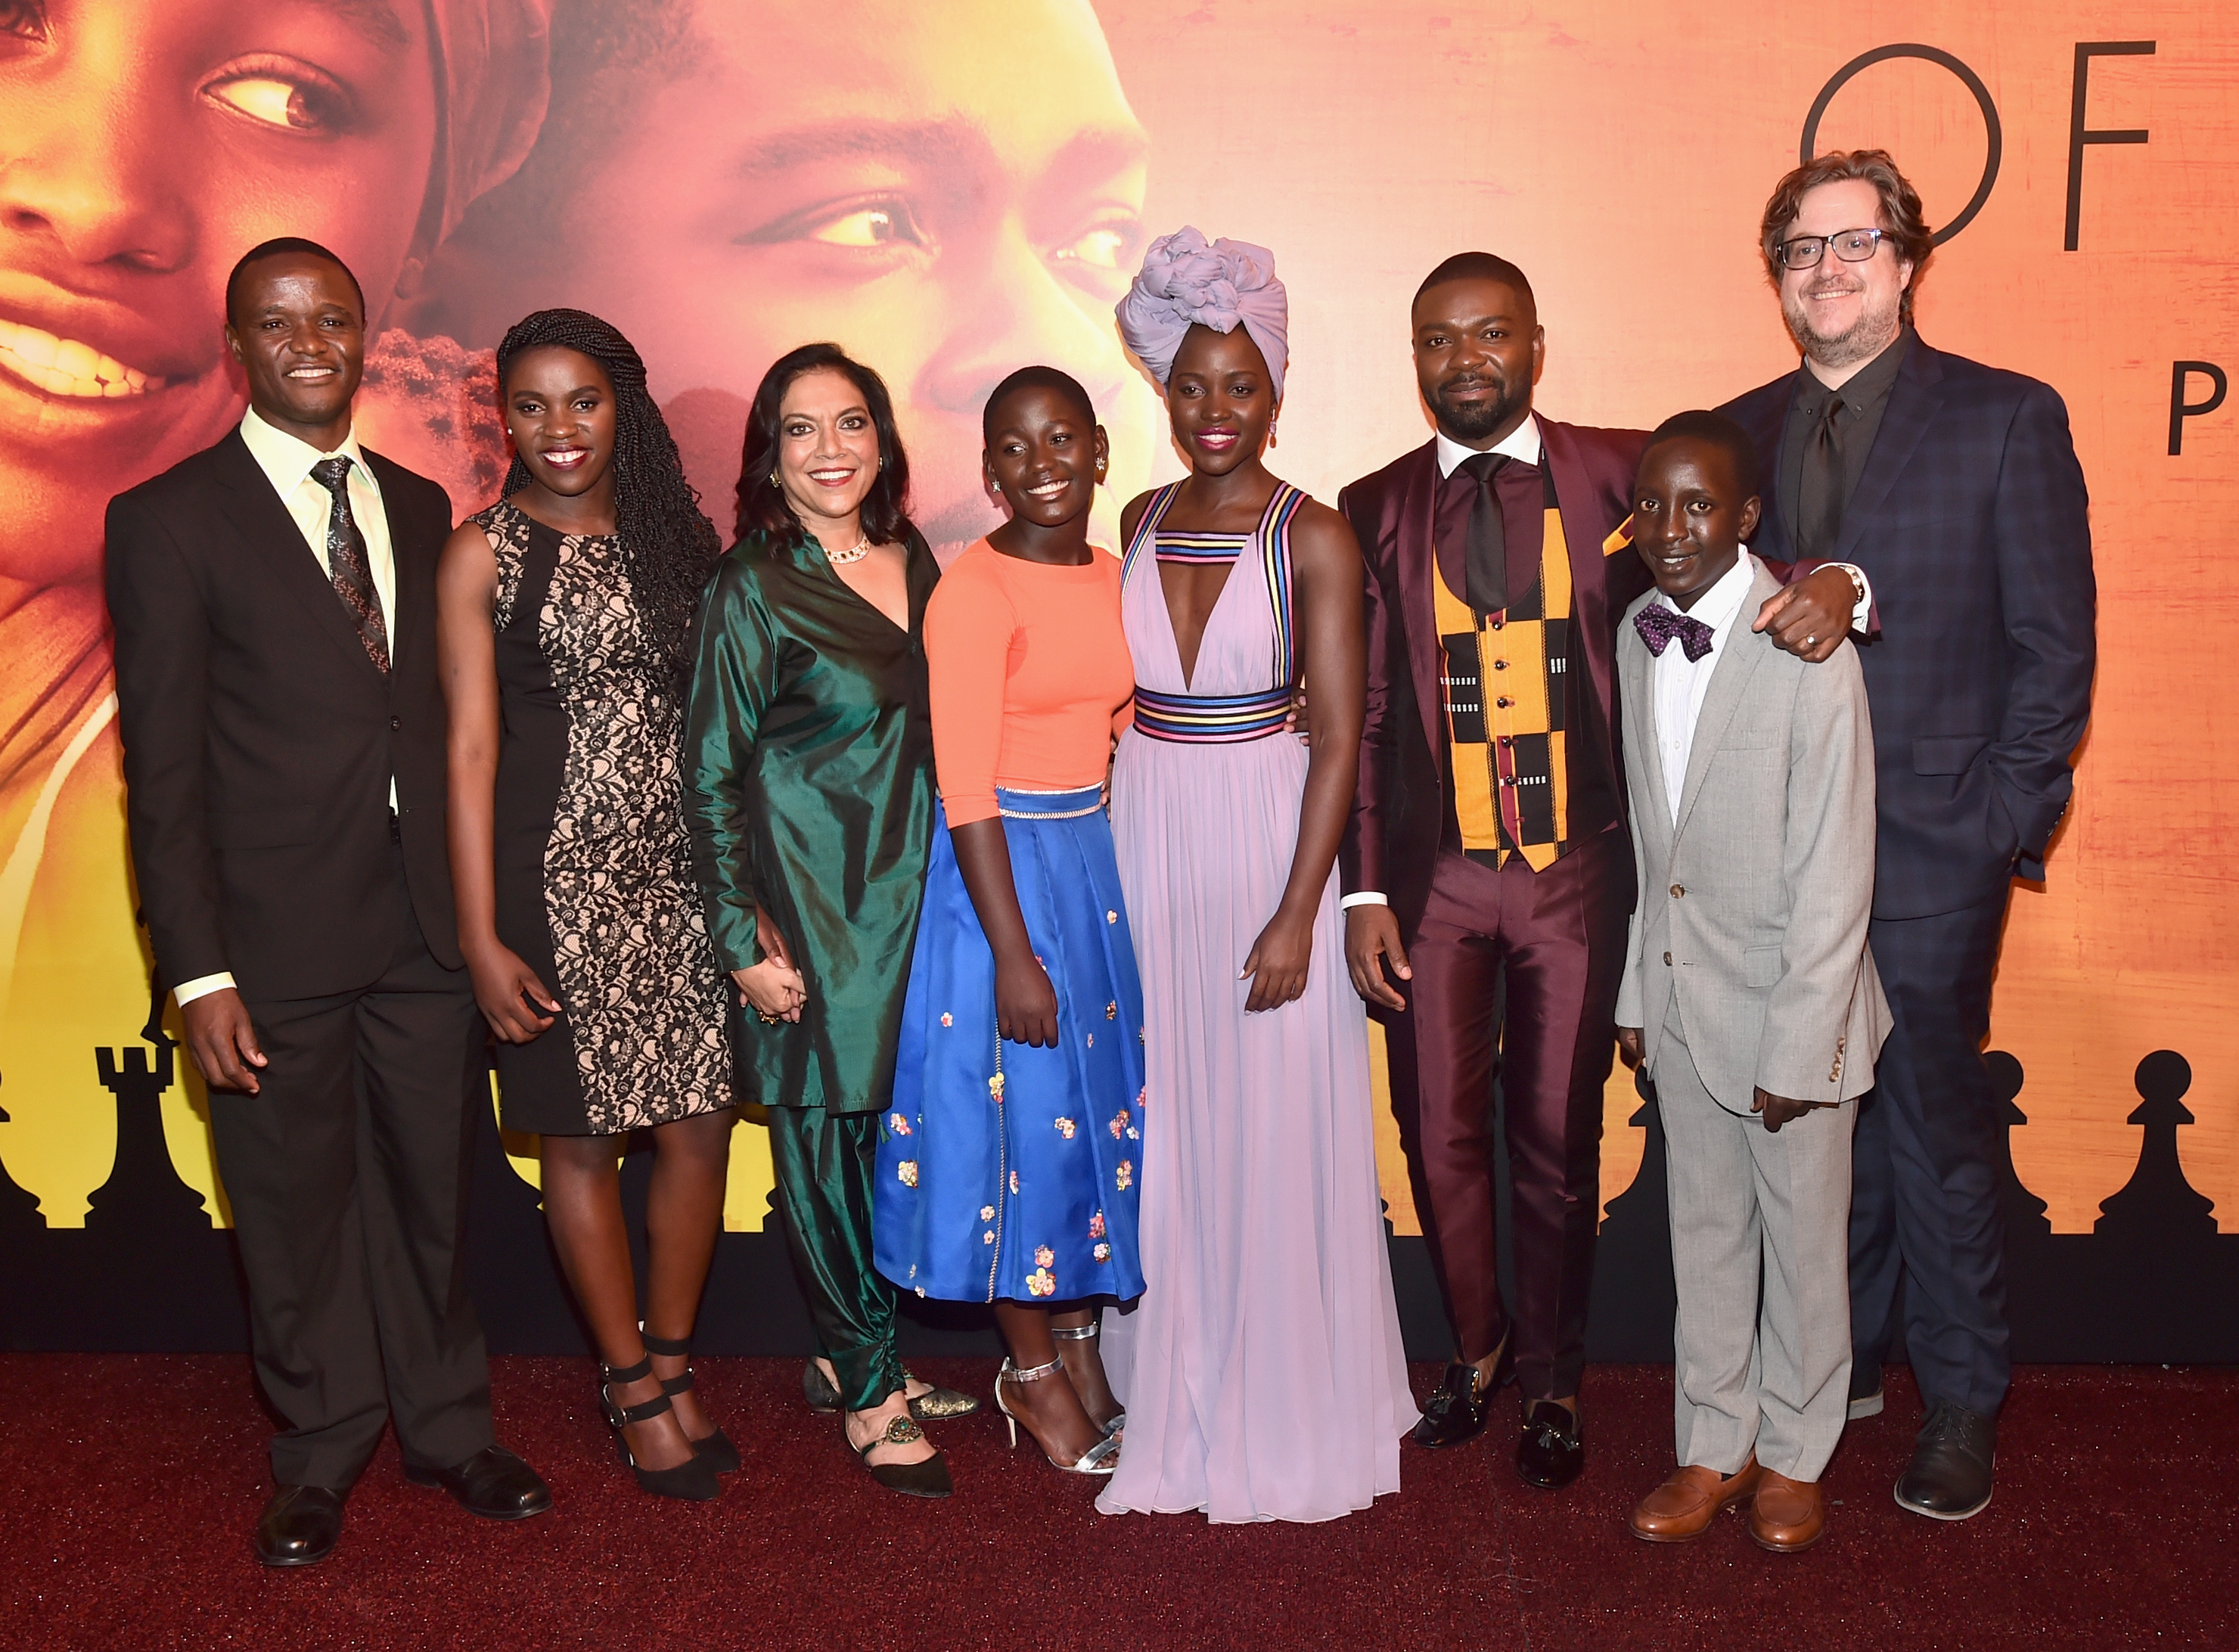 (L-R) Chess Coach and Director of Sports Outreach in Uganda, Robert Katende, Ugandan national chess champion Phiona Mutesi, Director Mira Nair, actors Madina Nalwanga, Lupita Nyong'o, David Oyelowo, Martin Kabanza and William Wheeler